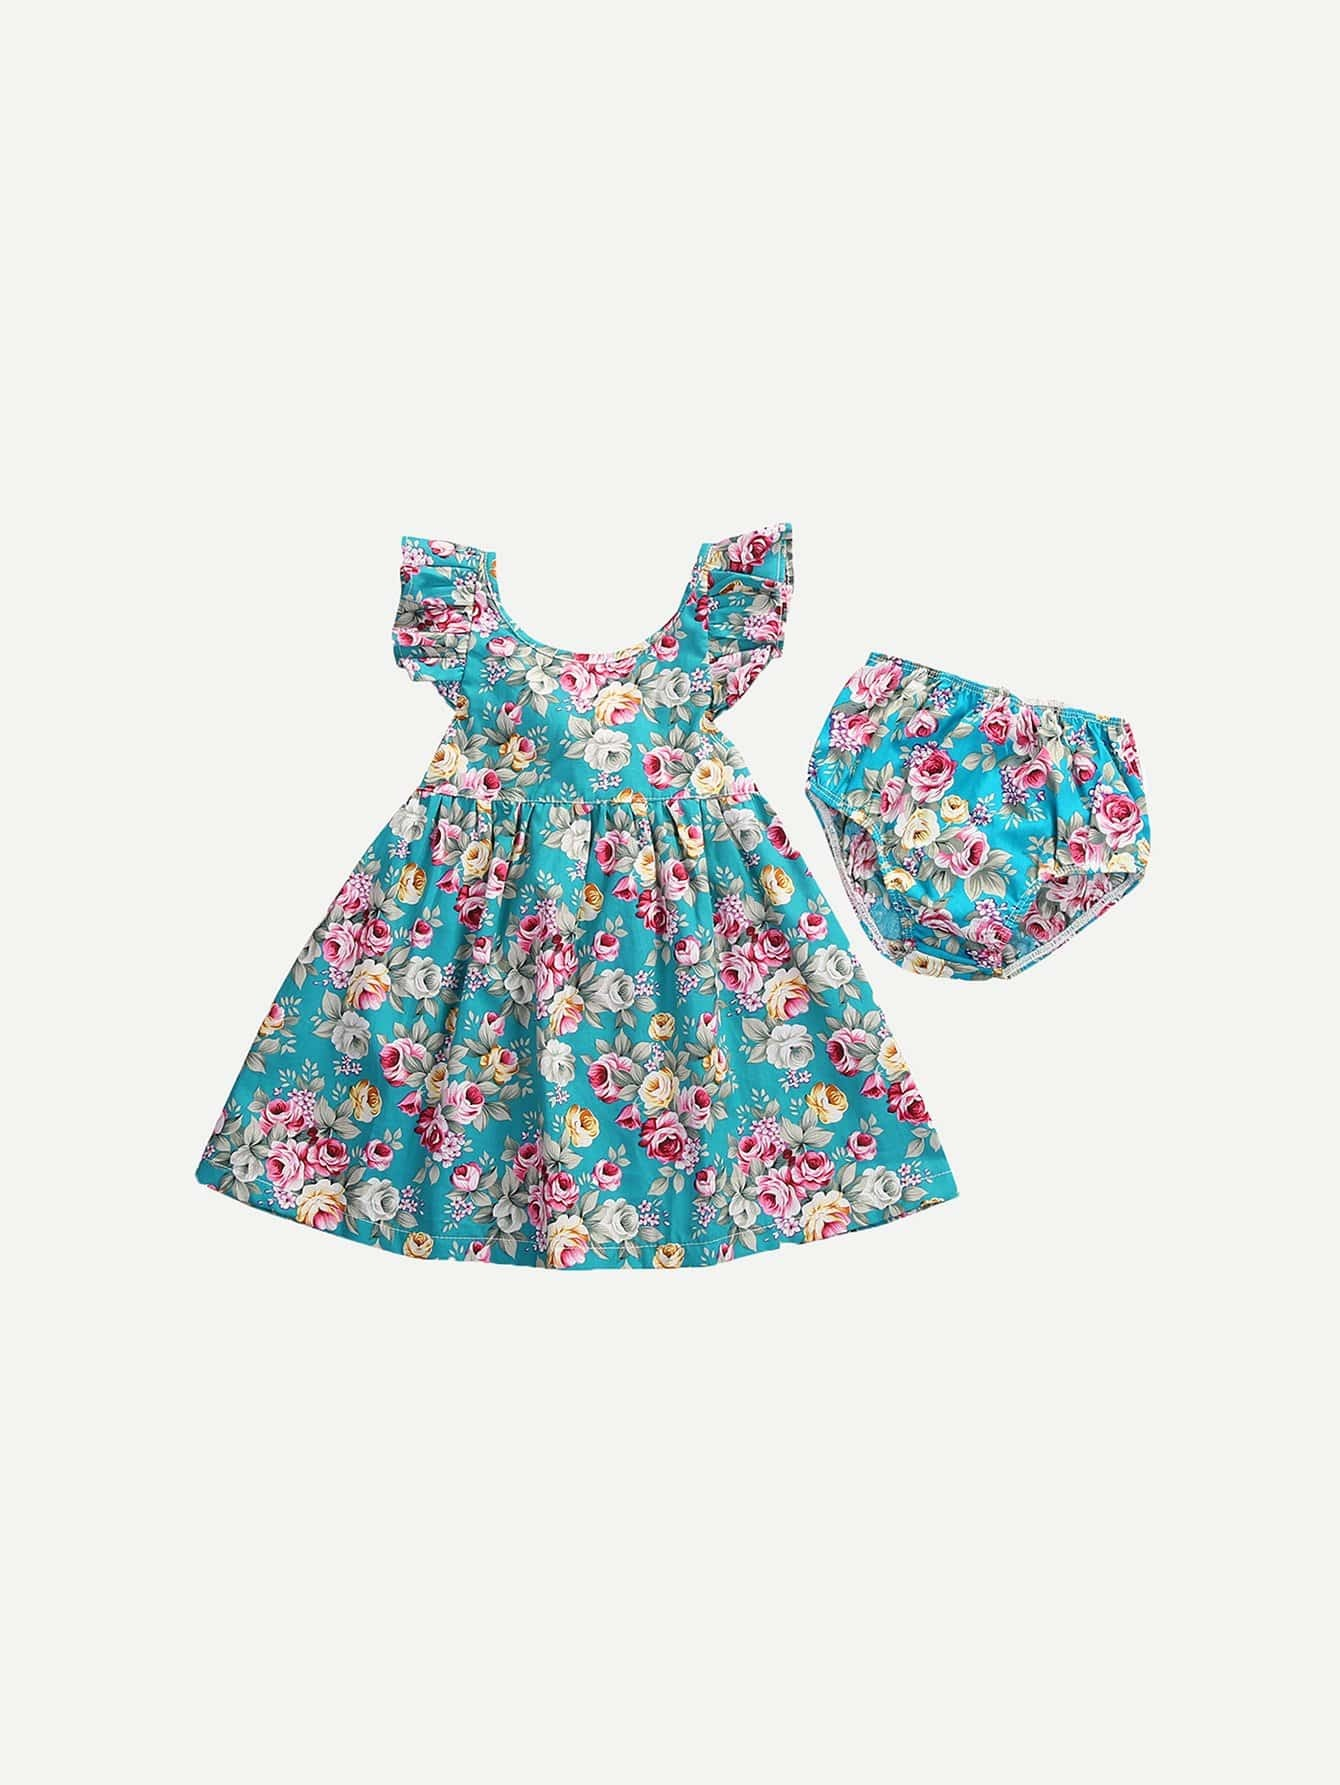 Girls Floral Print Top With Shorts floral applique bowknot top with shorts